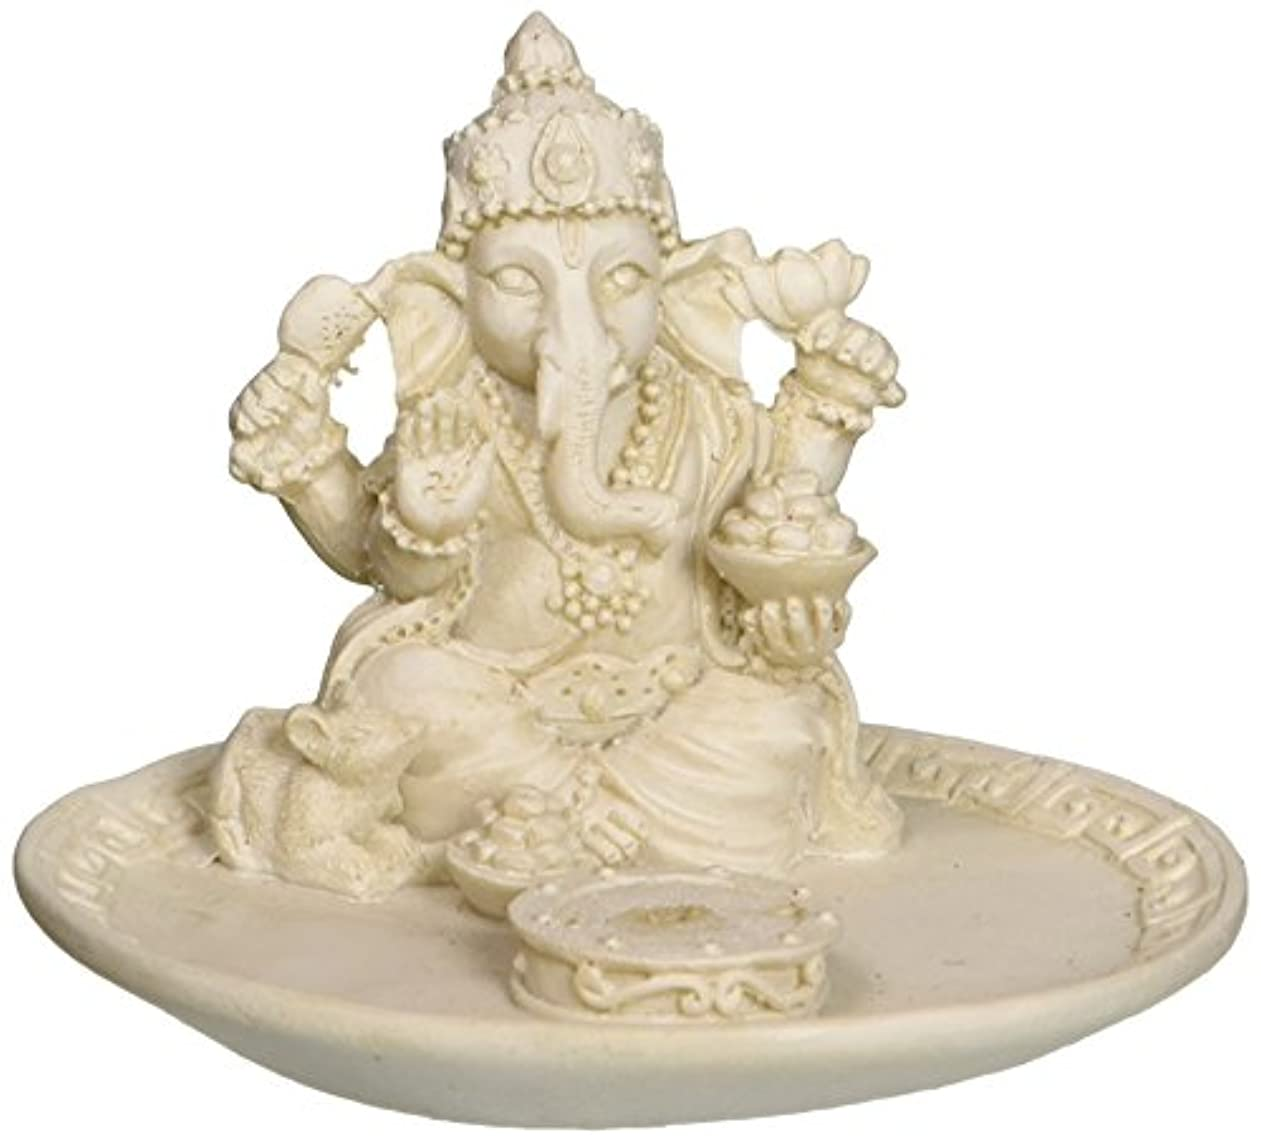 猛烈なミルク真似るWhite Beautiful Lord Ganesh Incense Sticks Holder - Ganesha, Laxmi, Shiva, Durga, Kali